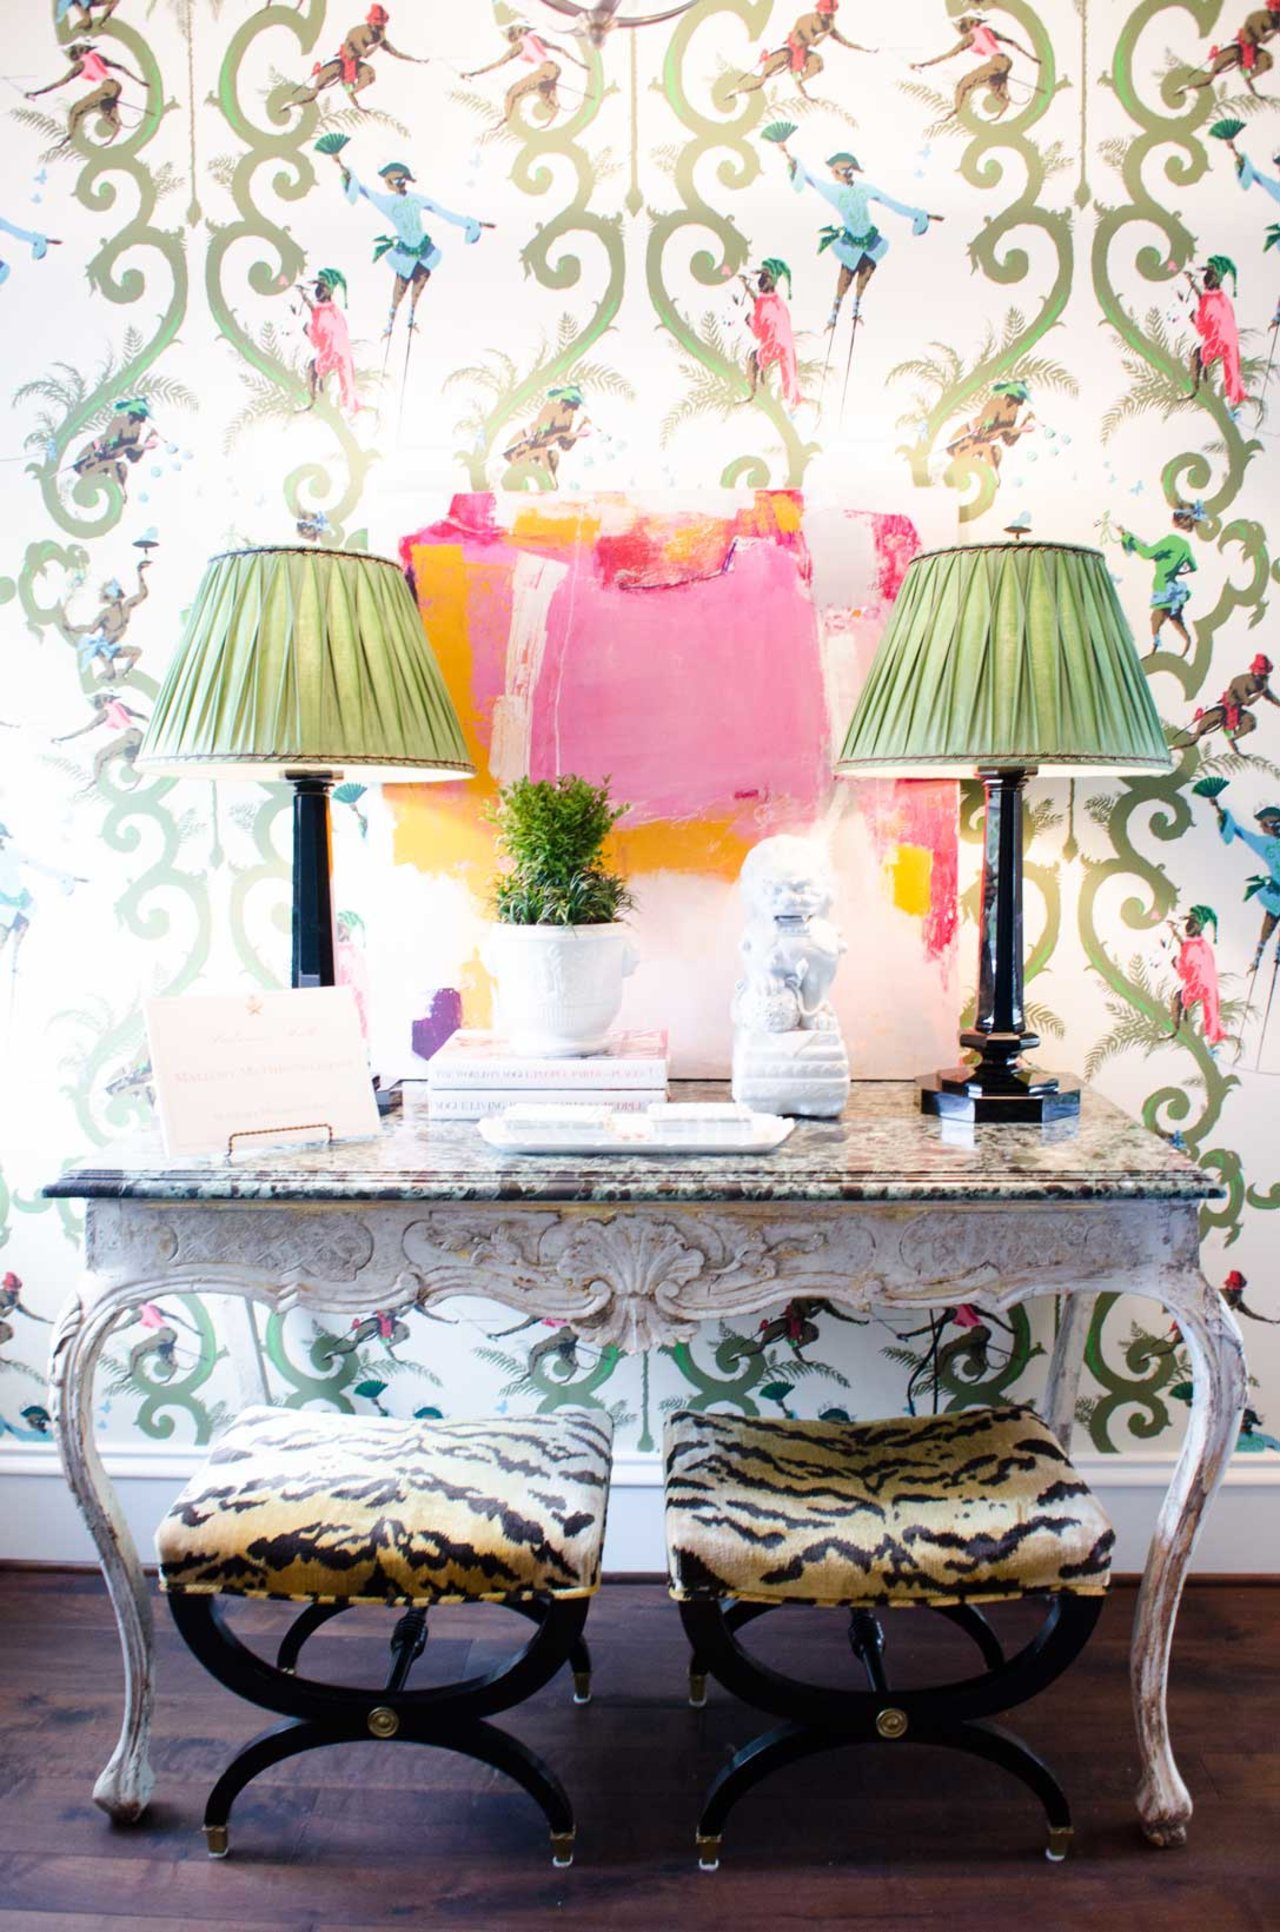 Whimsical pink and green monkey wallpaper and console table - Home for Holidays showhouse